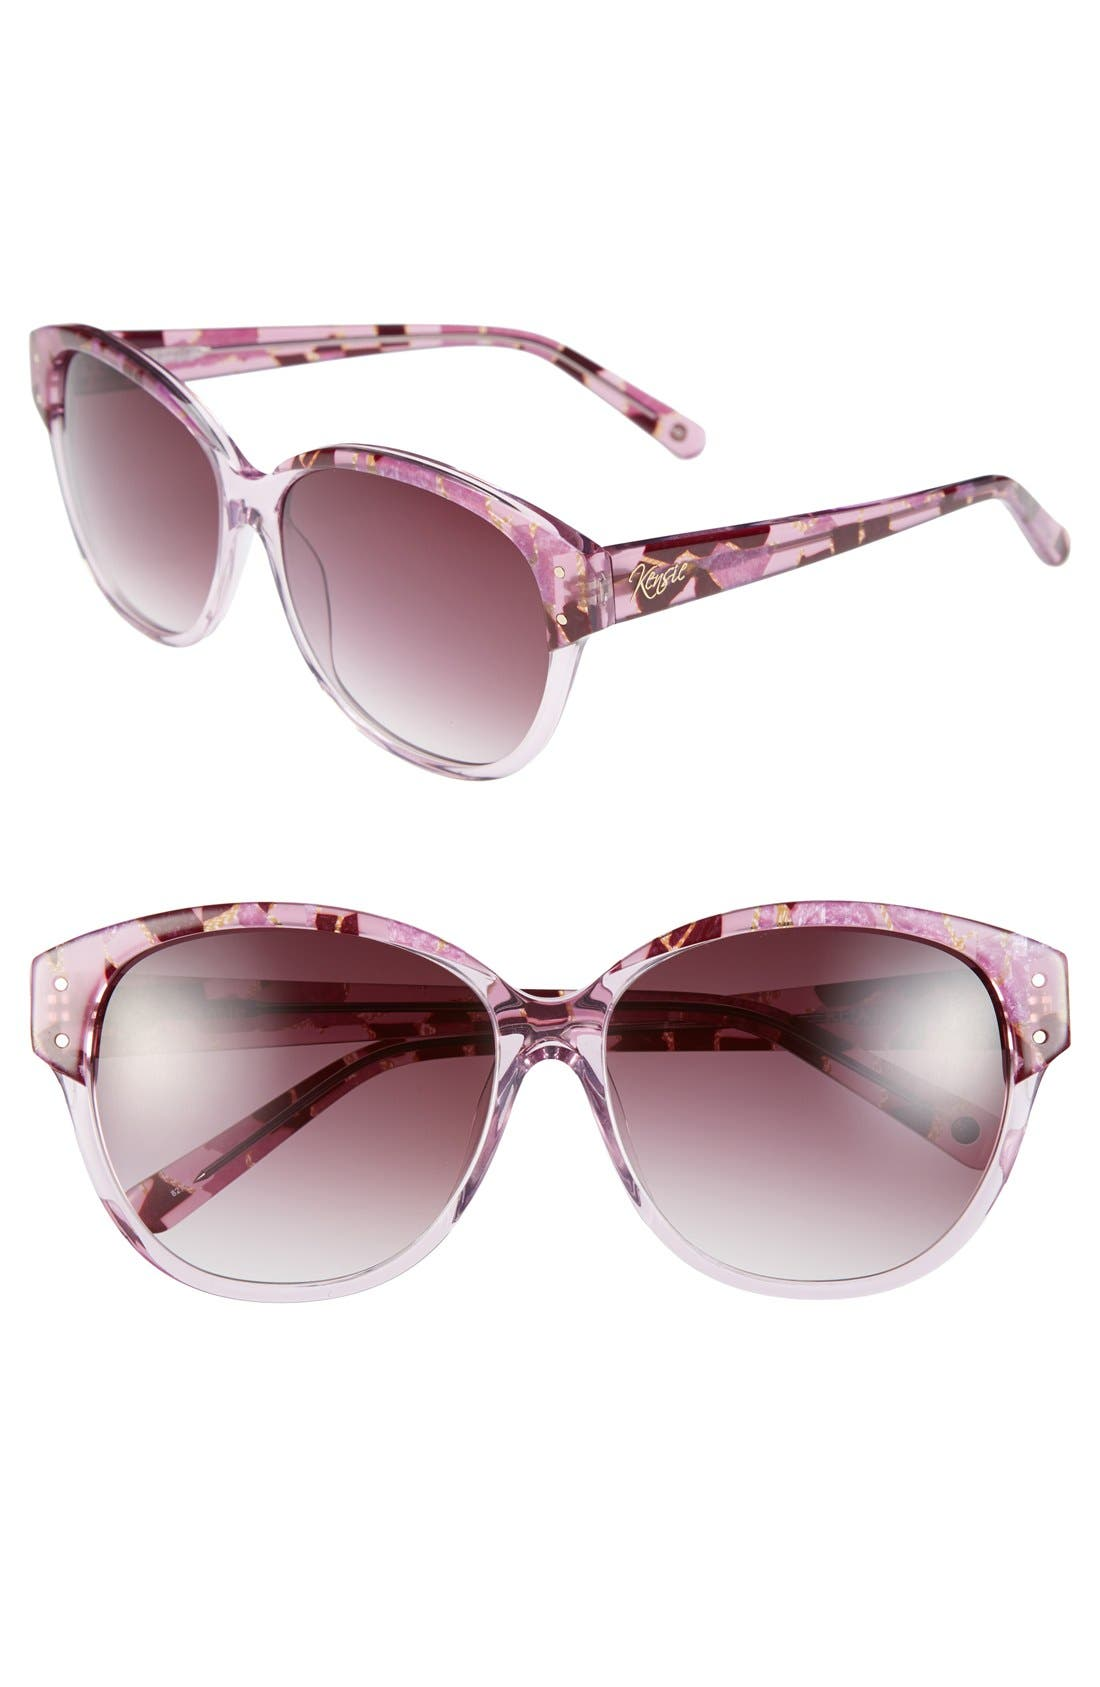 Main Image - kensie 'Kelly' 57mm Sunglasses